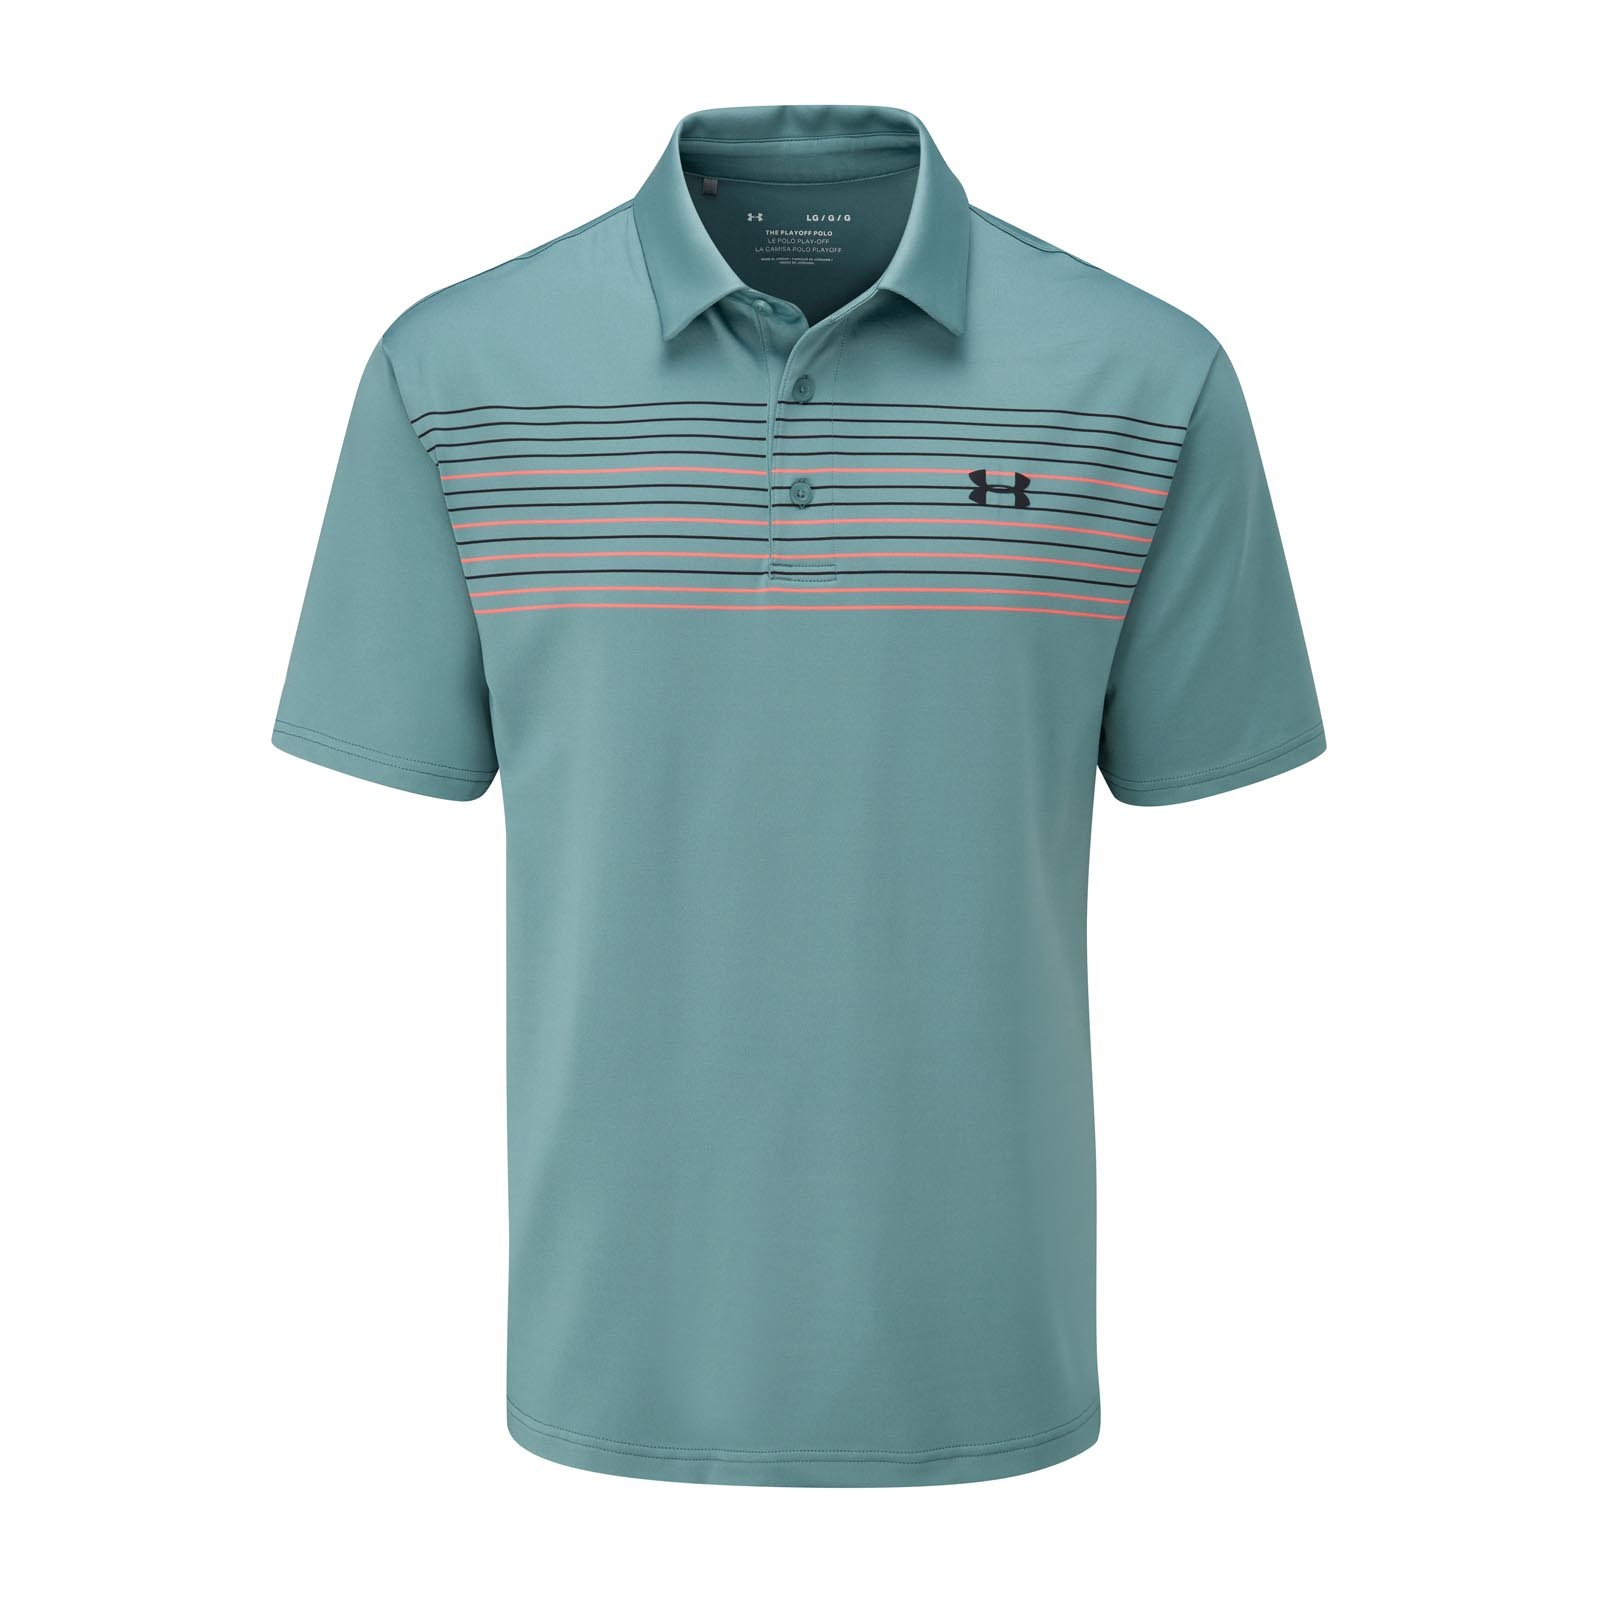 Under Armour Playoff Polo 2.0 - Speed Stripe